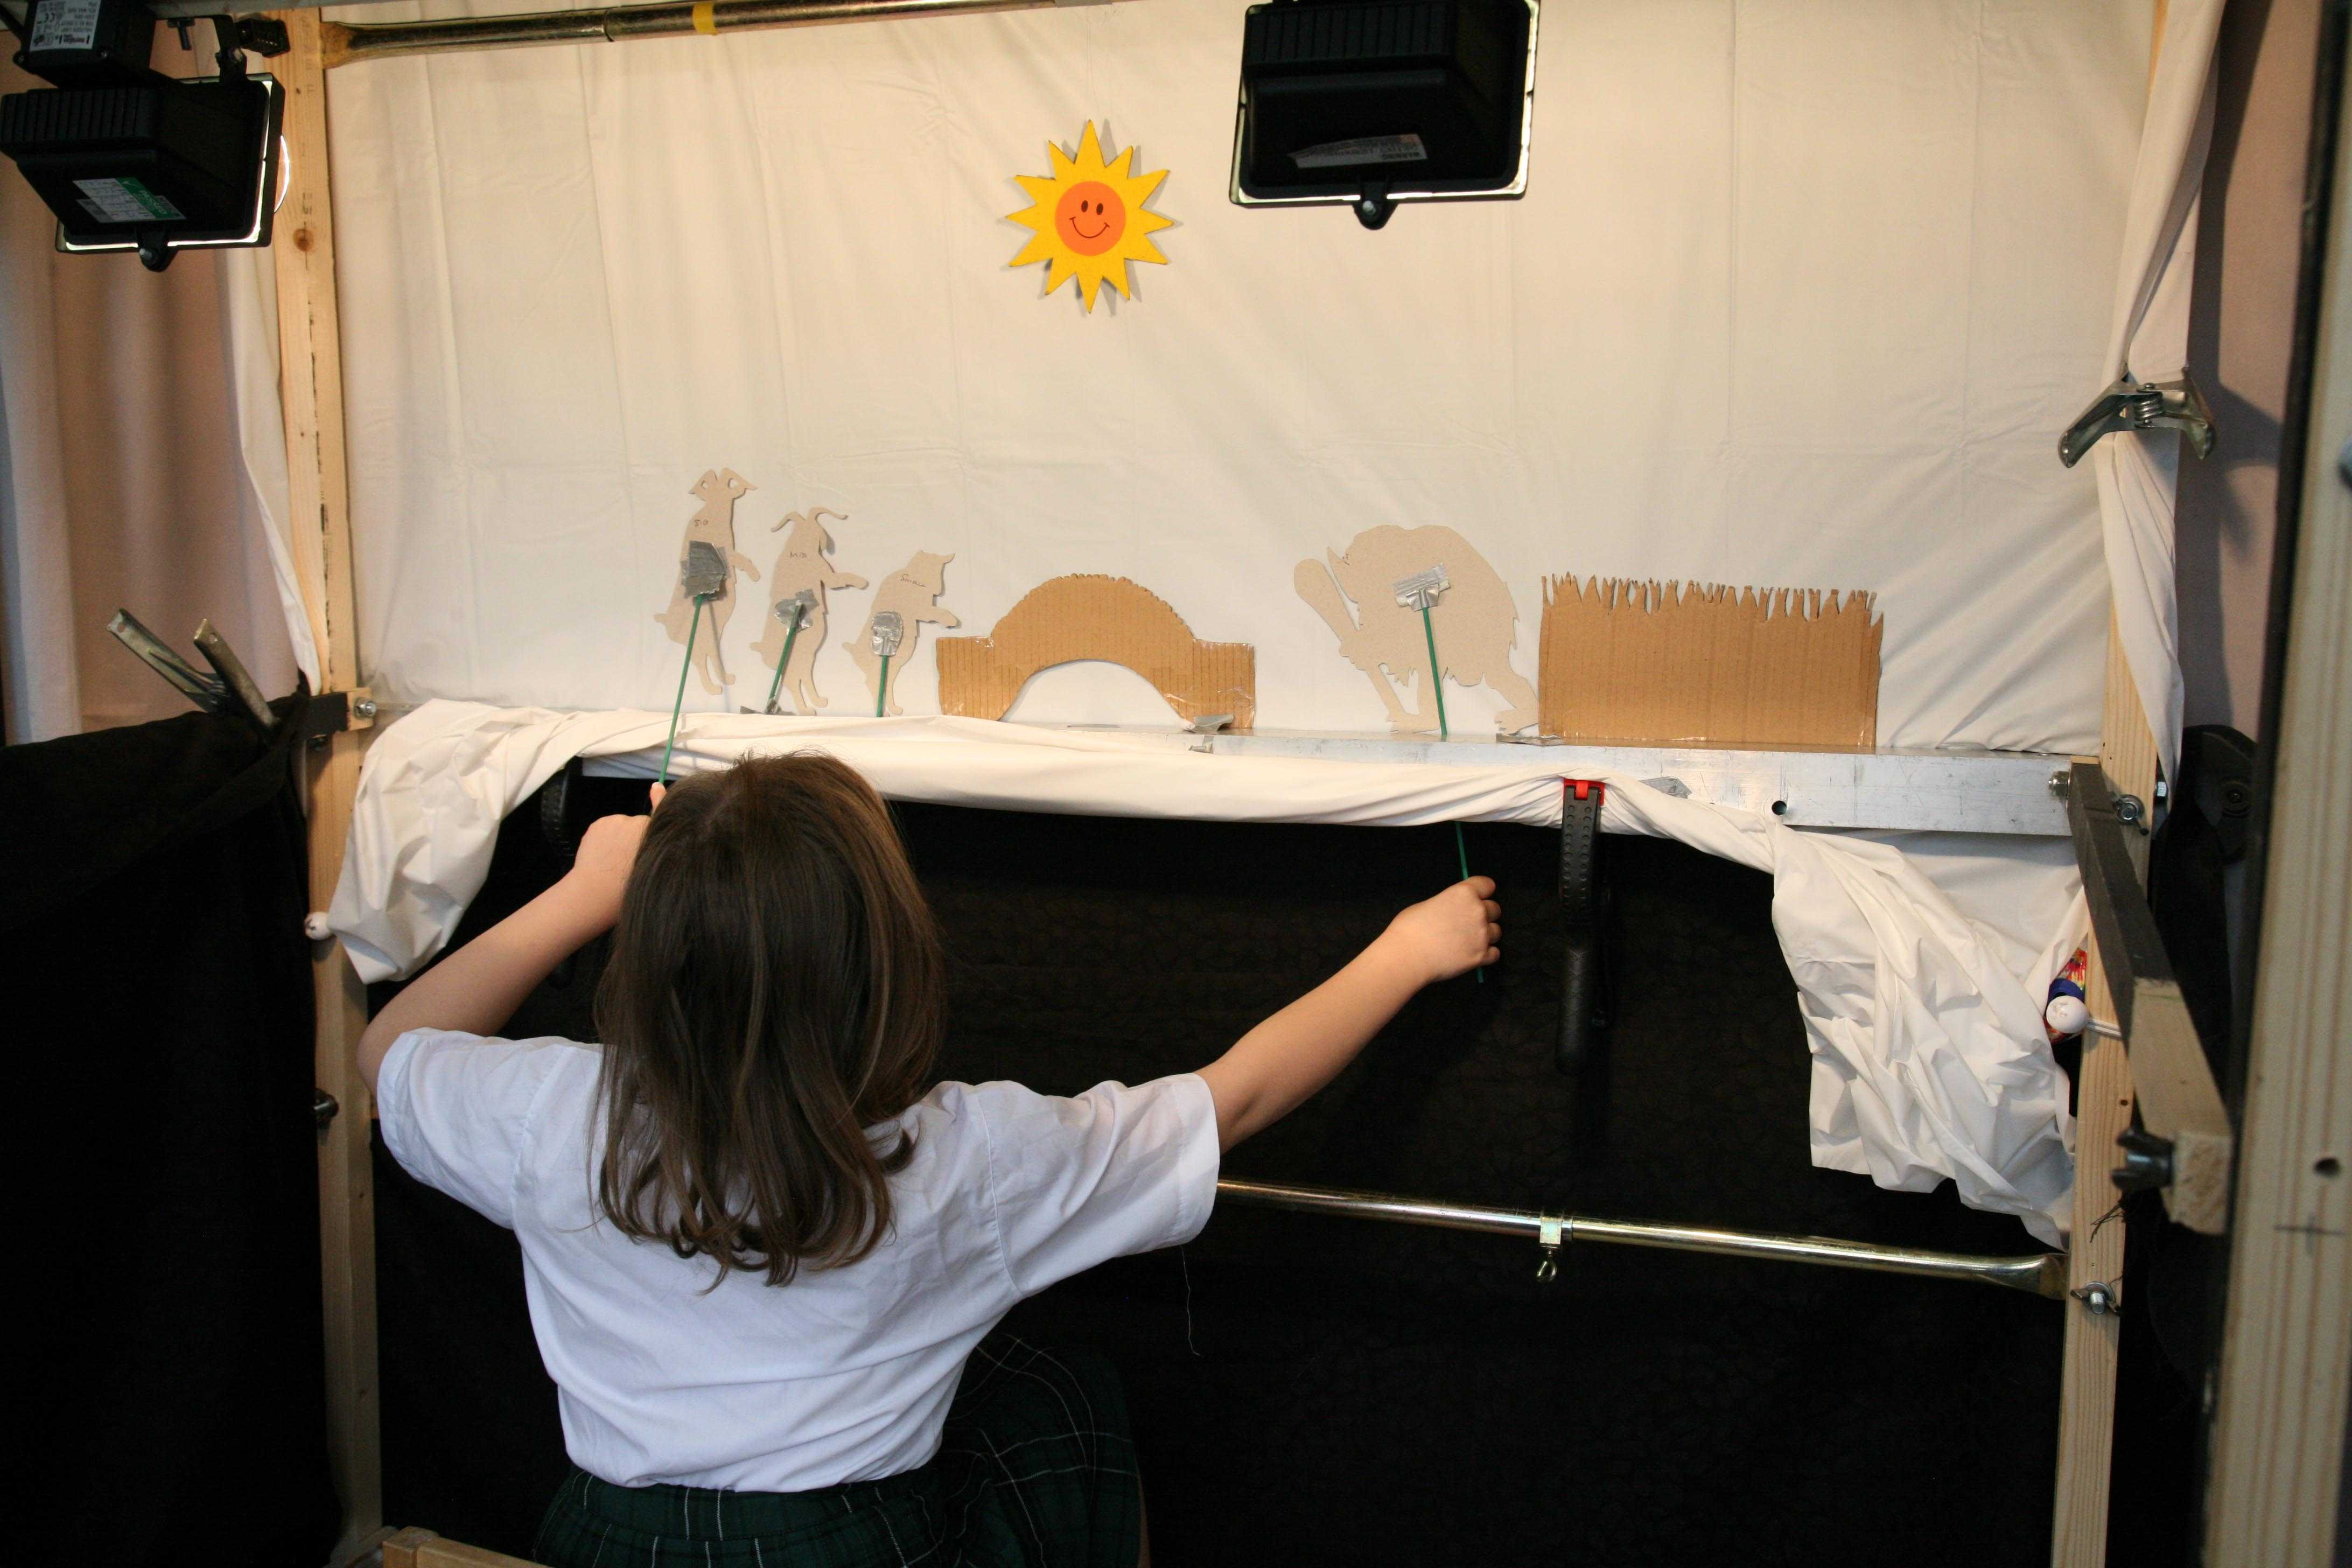 School children making shadow puppet characters out of cadrboard